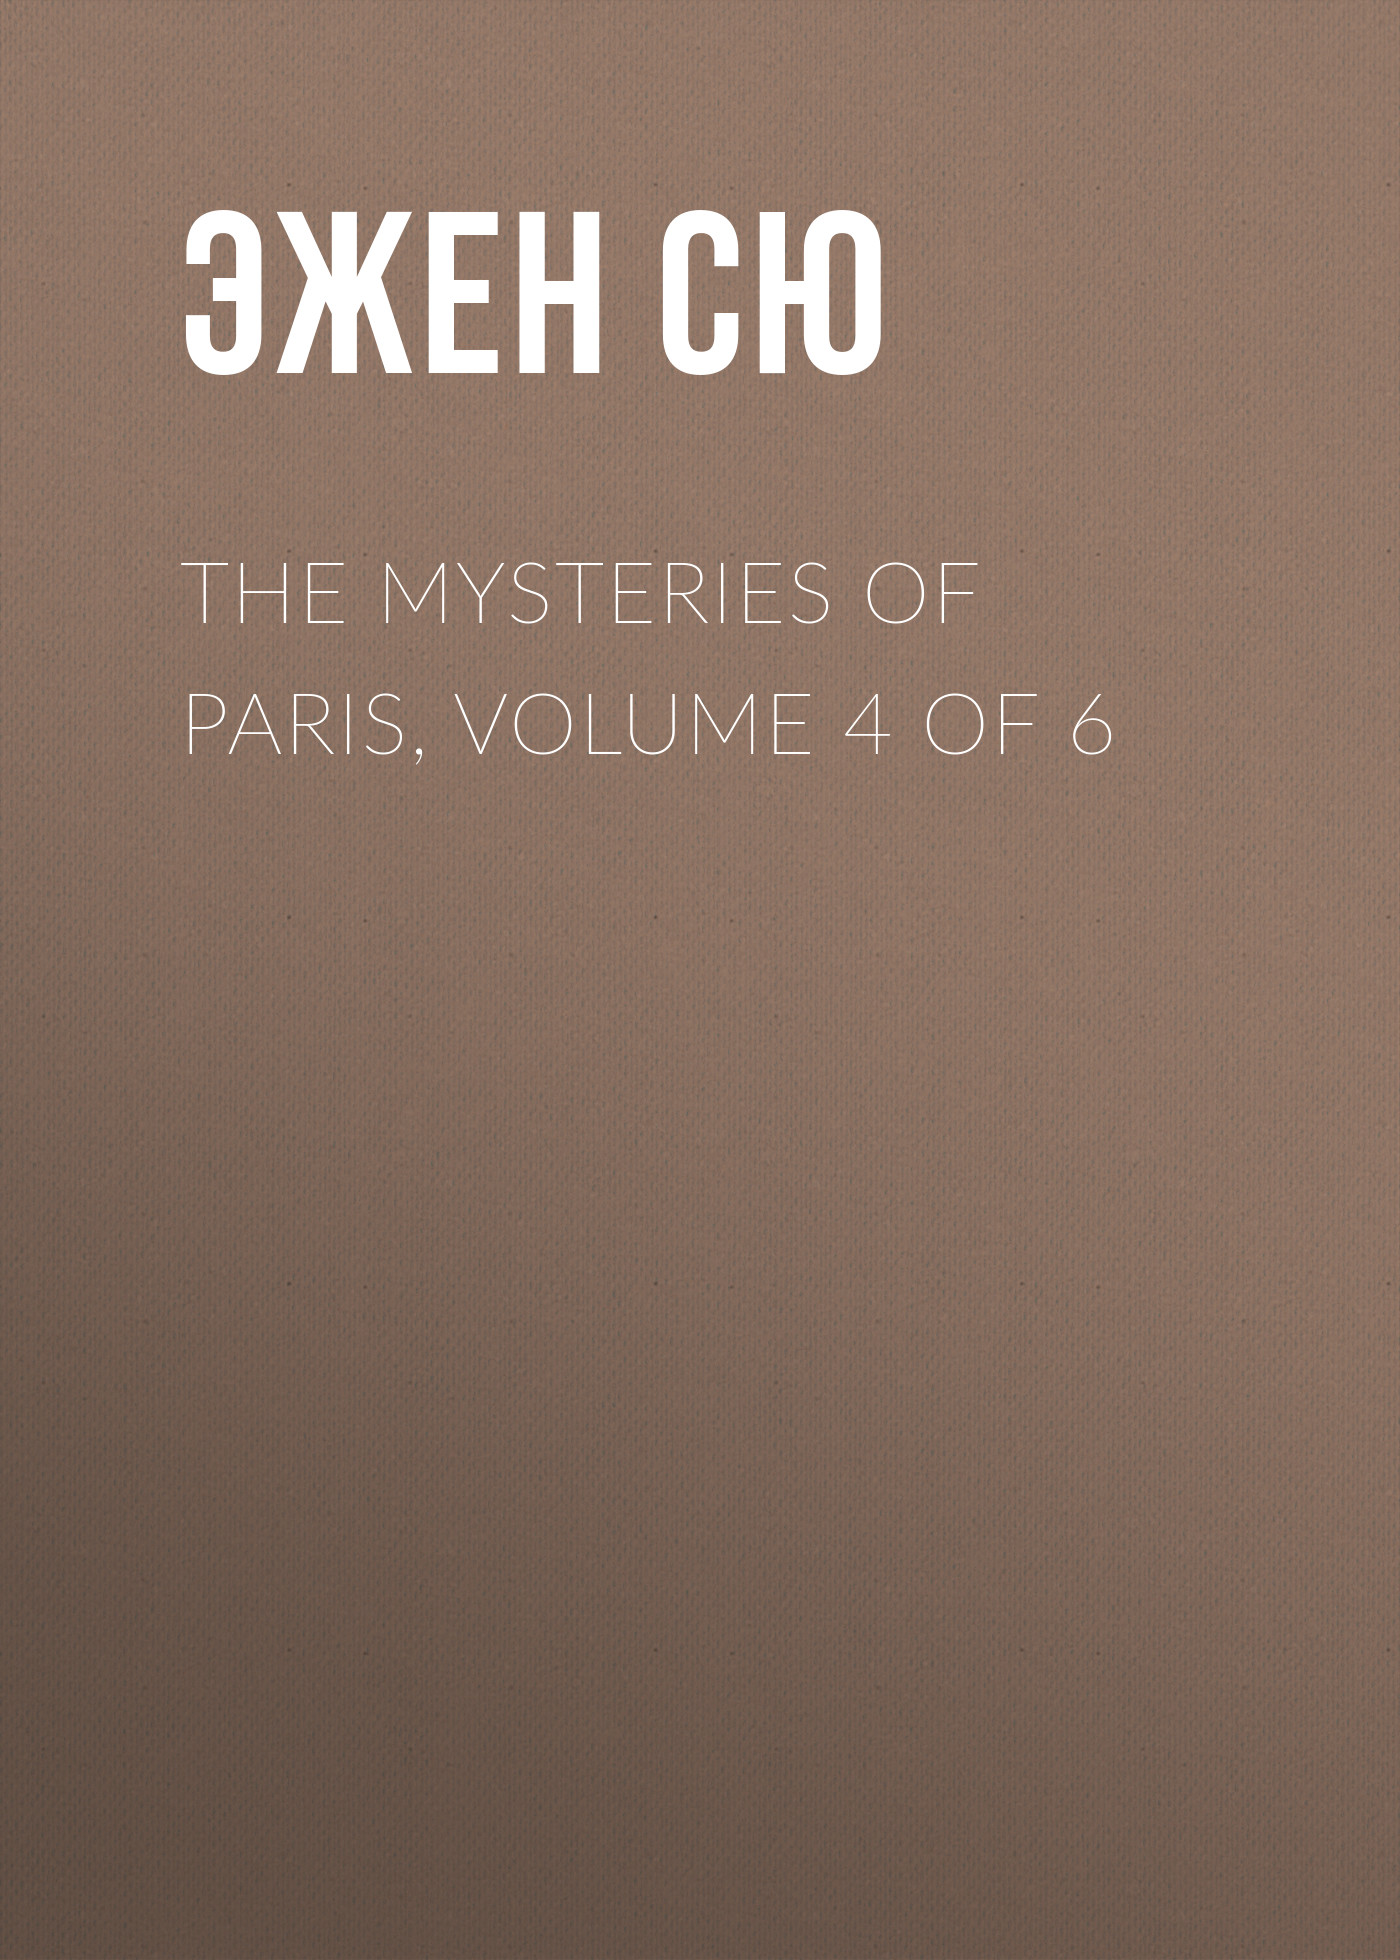 Эжен Сю The Mysteries of Paris, Volume 4 of 6 цены